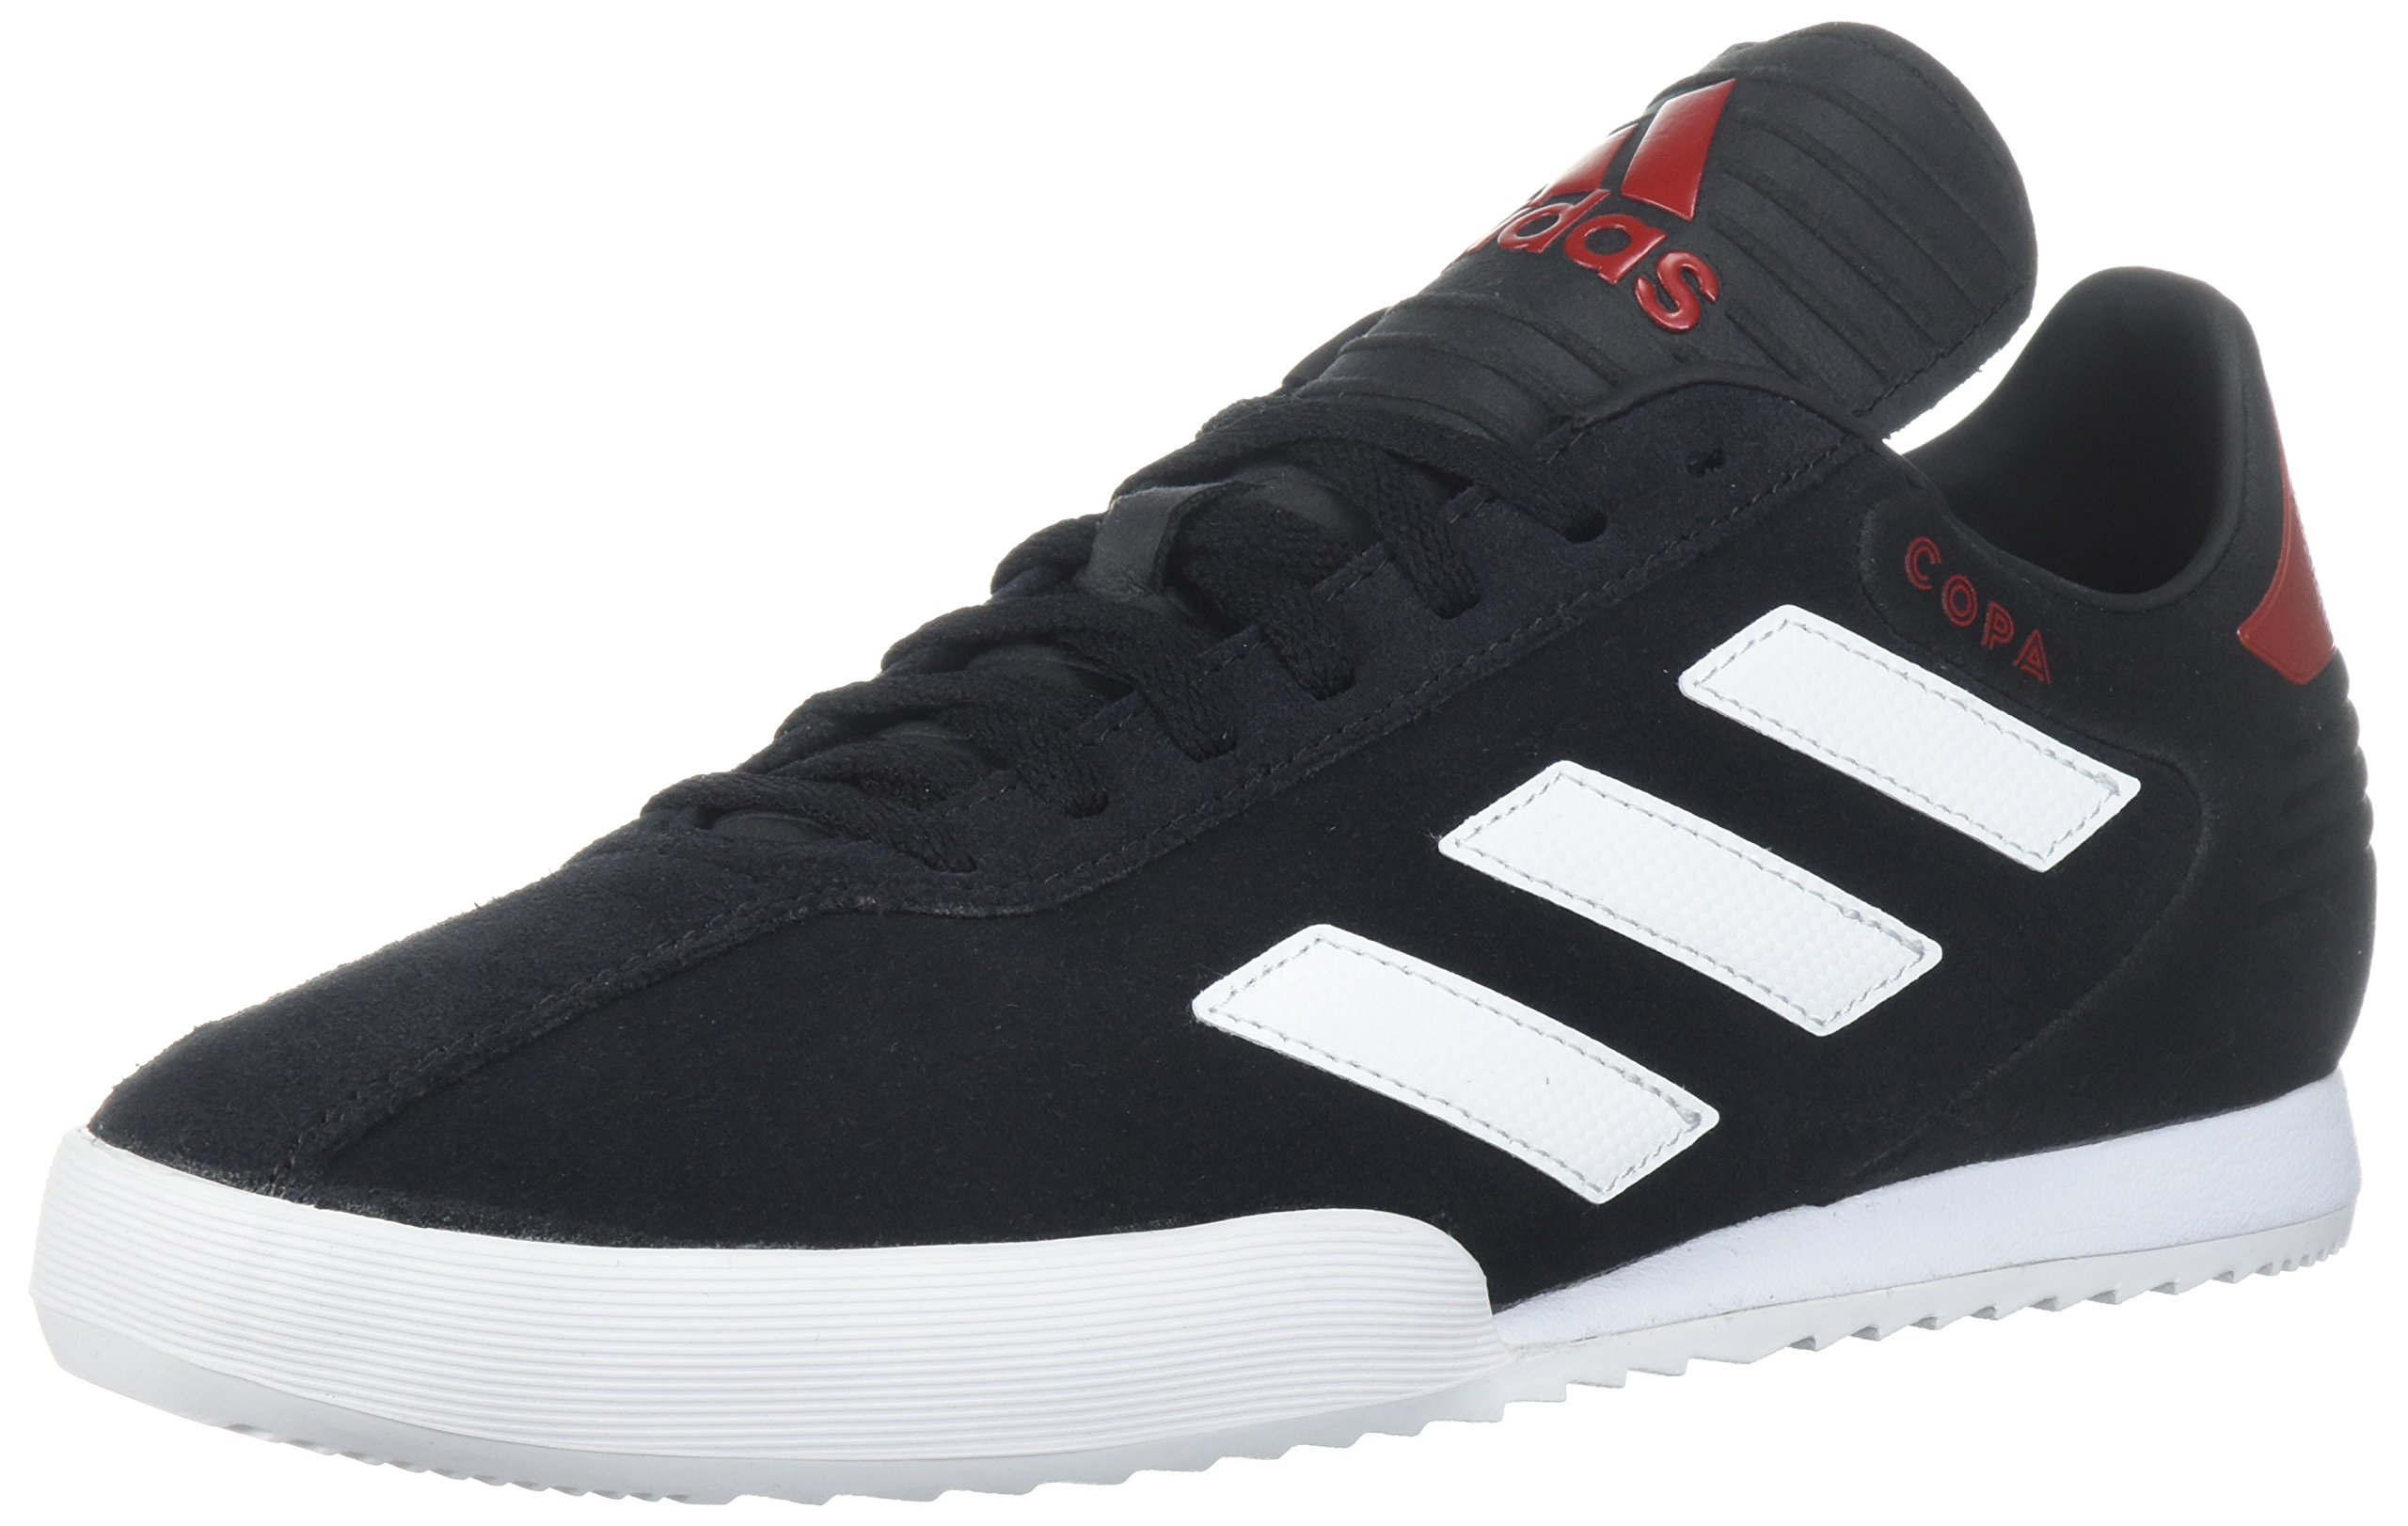 adidas Men's Copa Super Soccer Shoe, Black/White/Power Red, 10.5 M US by adidas